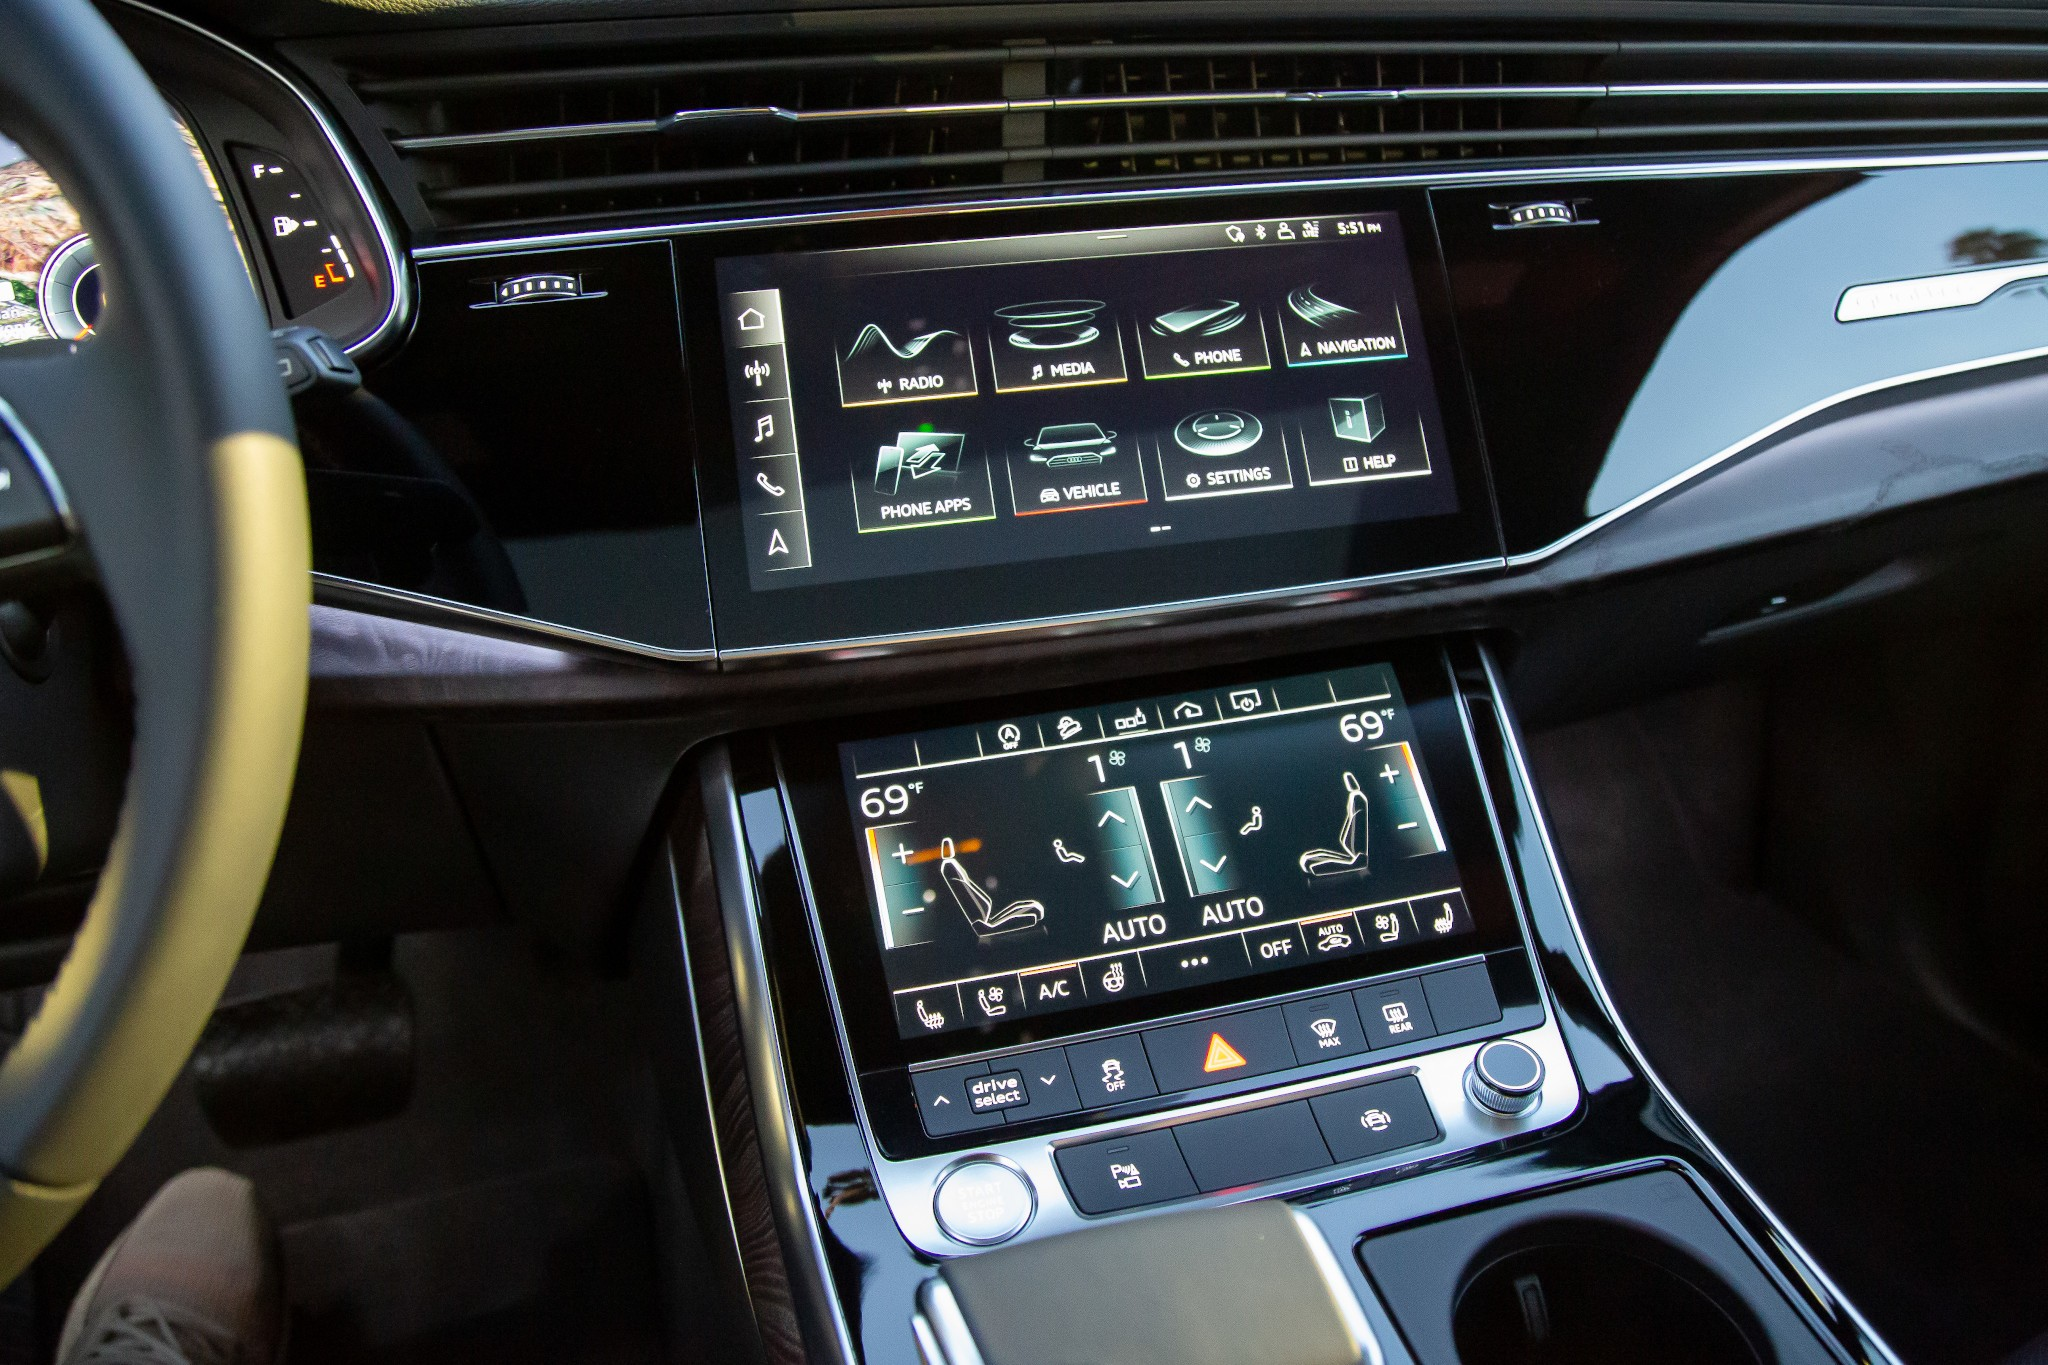 audi-q7-2020-16-center-stack--front-row--interior--seating-controls.jpg